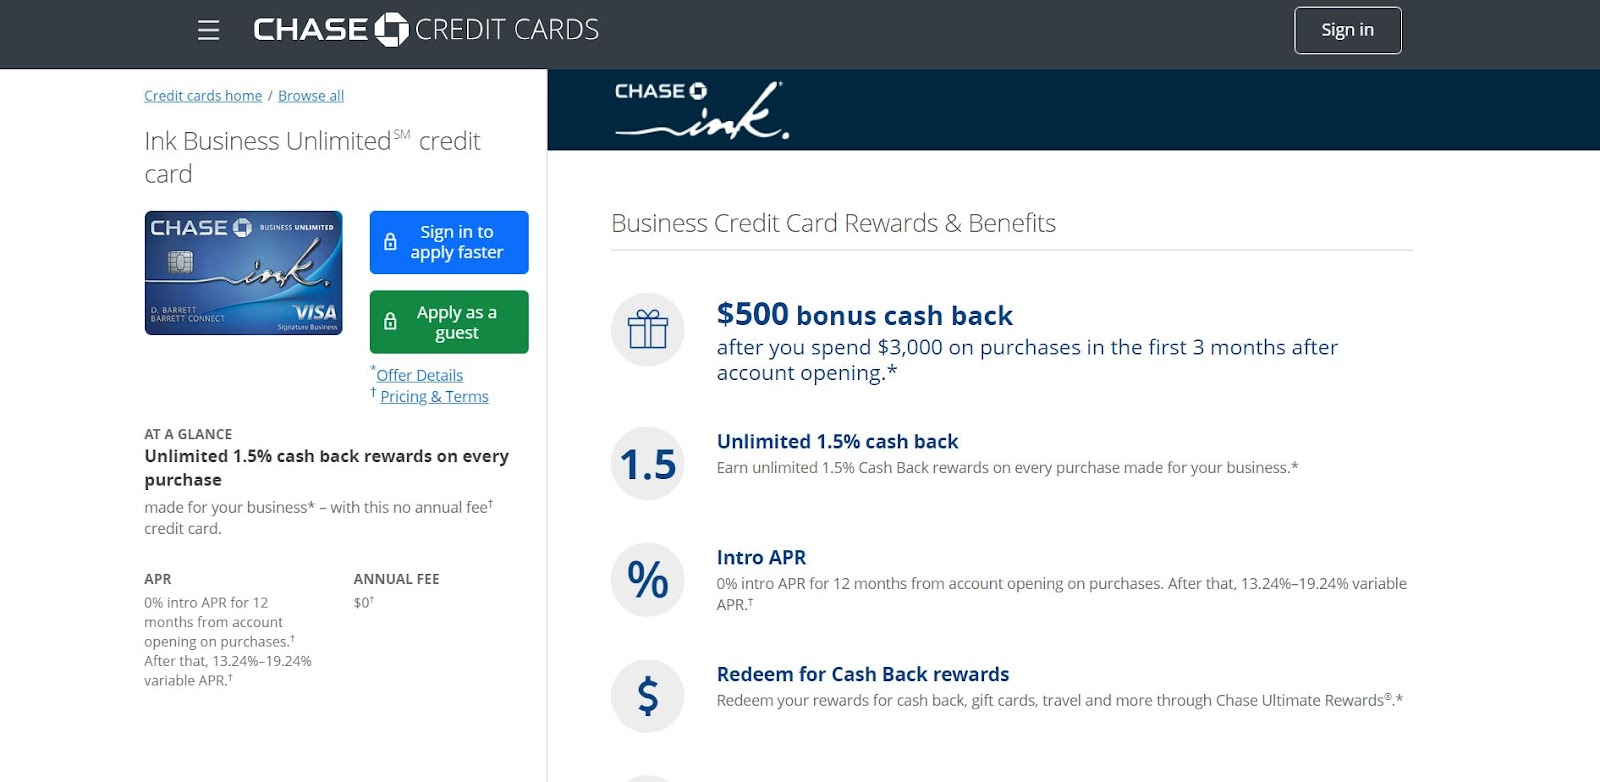 Chase Ink Business Unlimited Credit Card: The Top 10 Business Credit Cards for Small Businesses